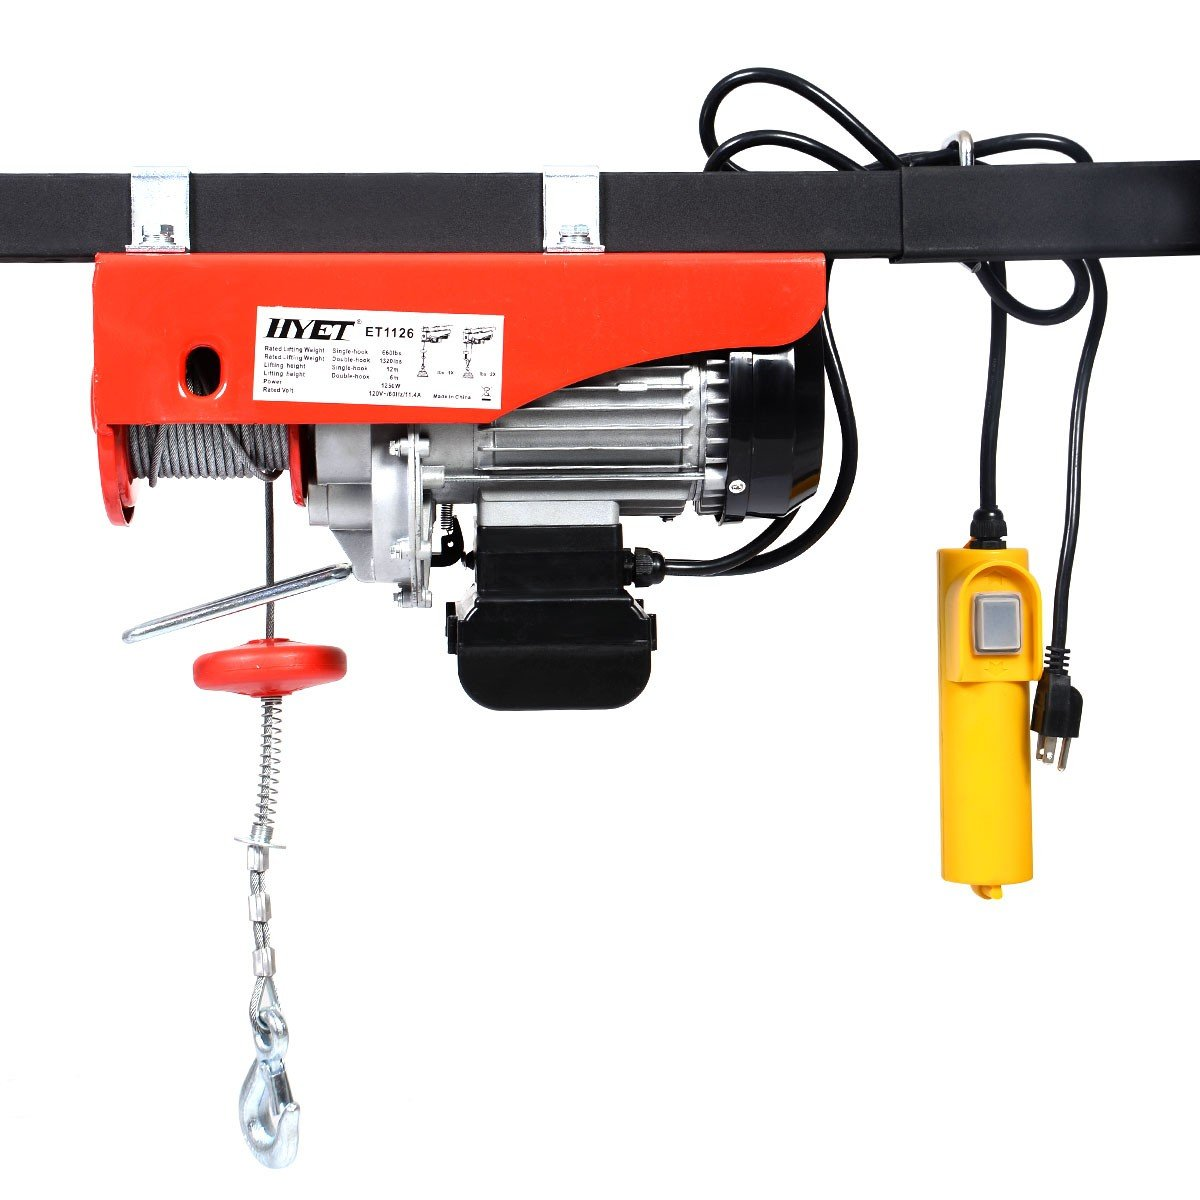 Electric Wire Hoist Lift with Remote Control Heavy Duty Lift Handyman Jack Auto Farm Power Tools Electric Wire Hoist Remote Control Garage Auto Shop Overhead Lift 1320lbs Mini 2pcs BESTChoiceForYou